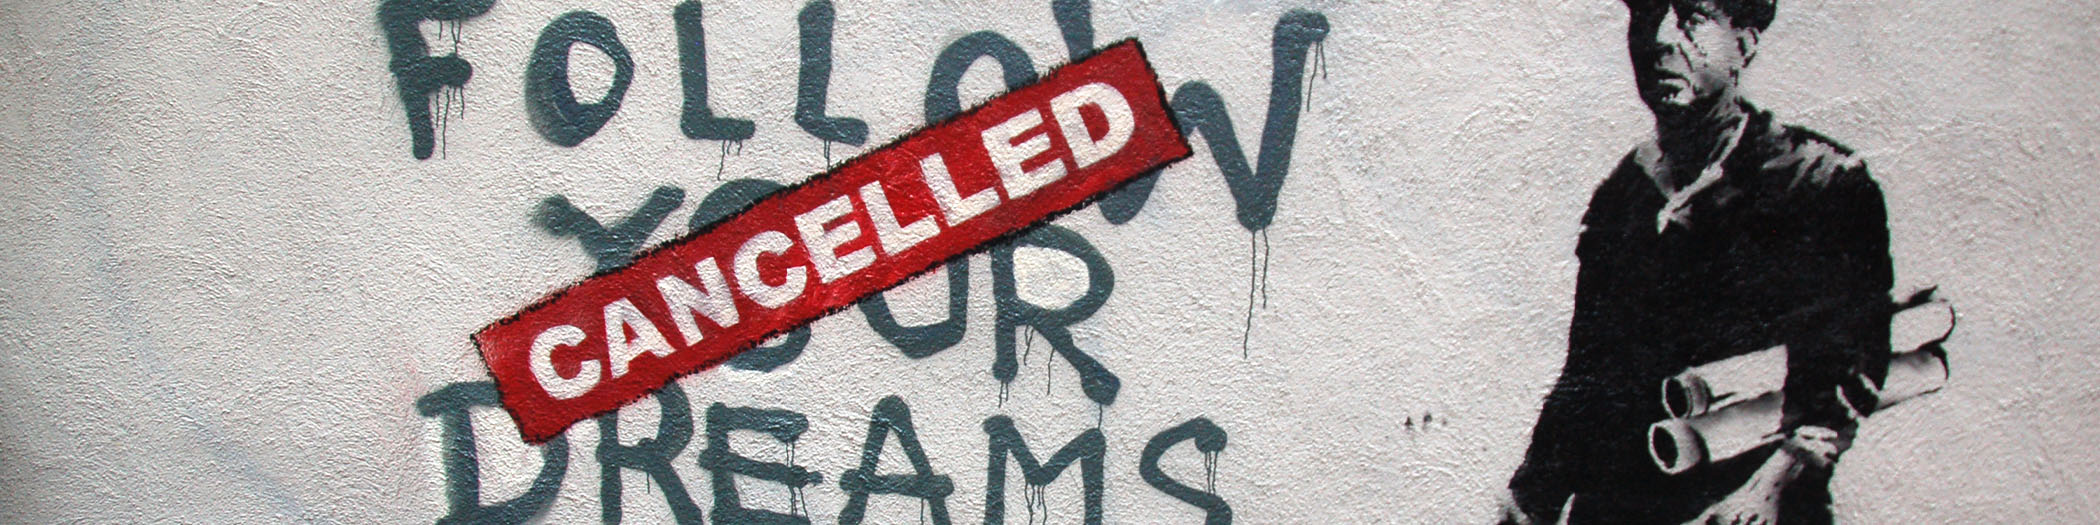 Banksy follow your dreams-cancelled